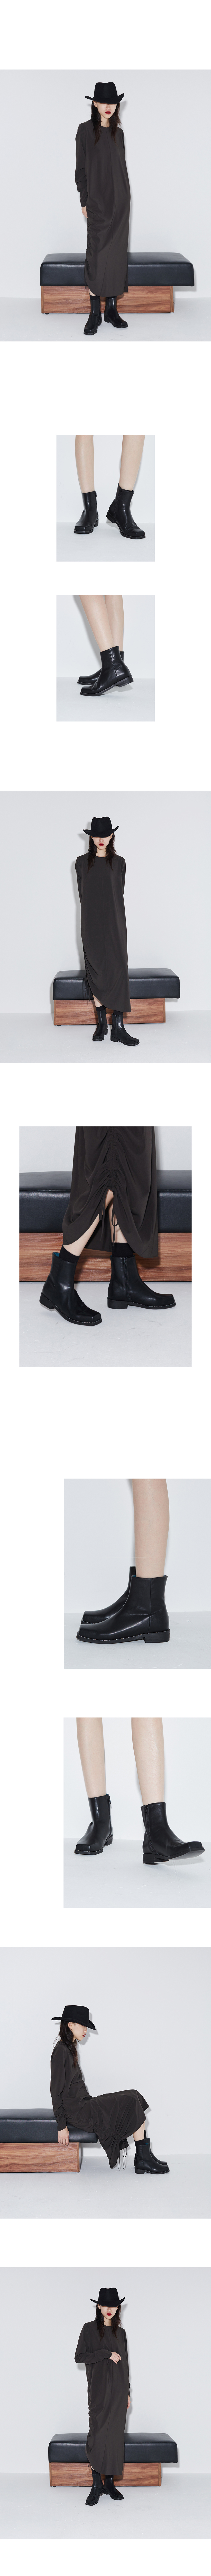 Square Toe Stitch Ankle Boots